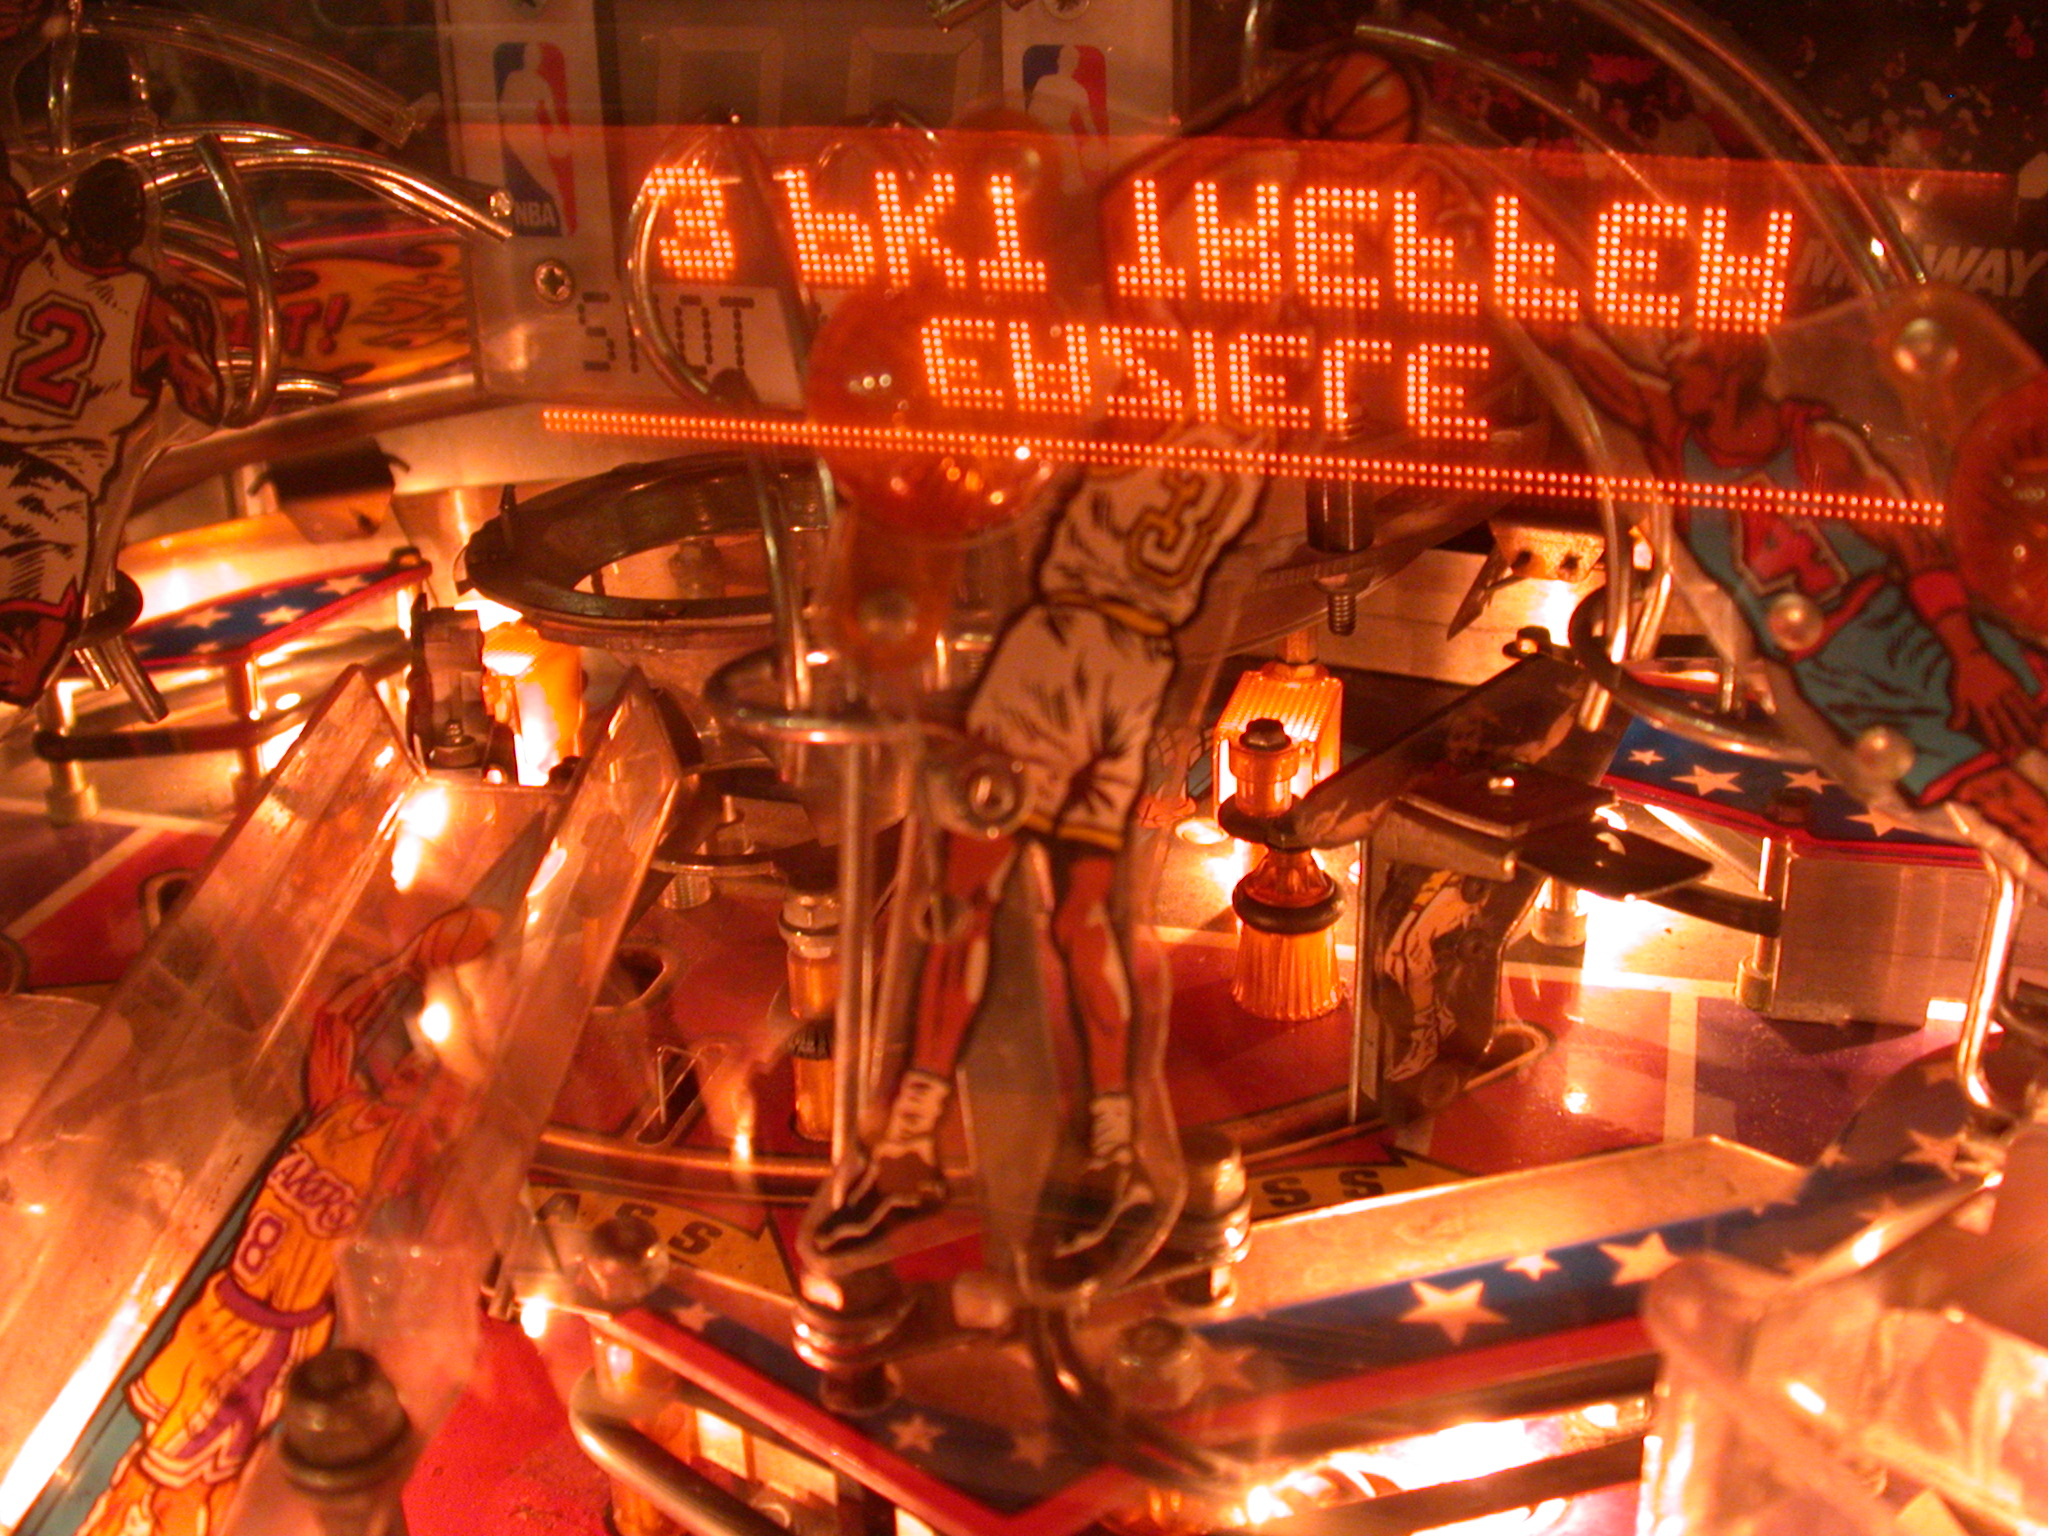 pinball machine orange lights NBA game